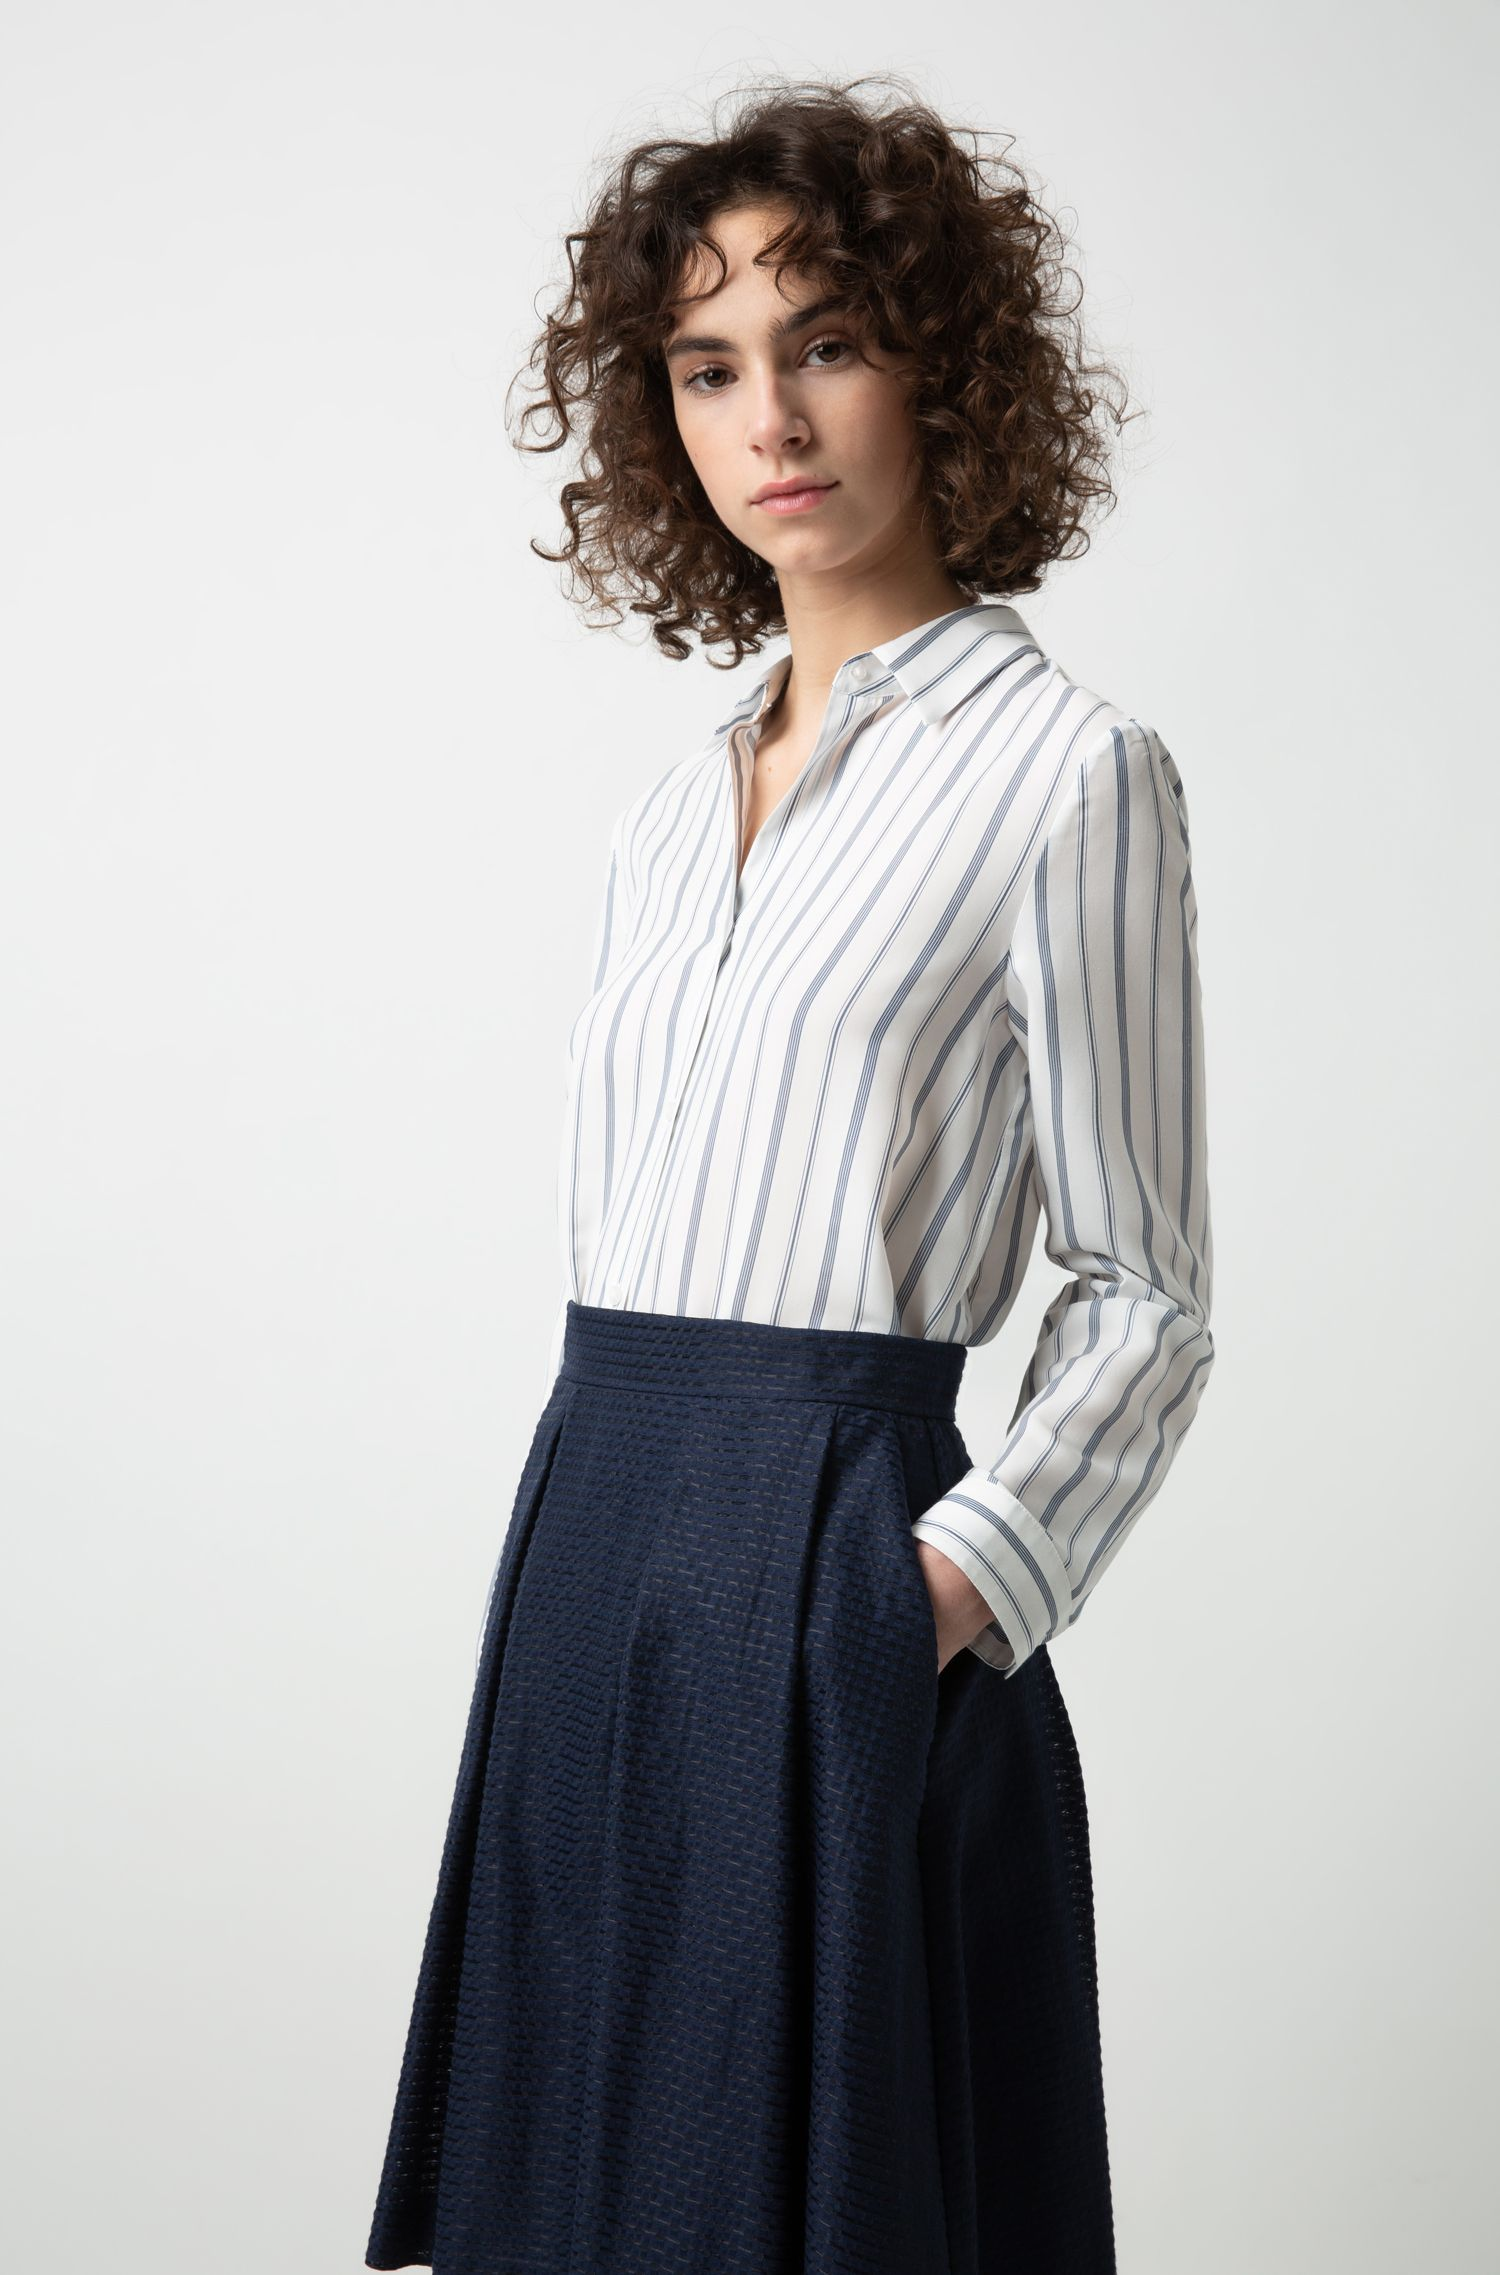 High-waisted A-line skirt in a structured cotton blend, Patterned